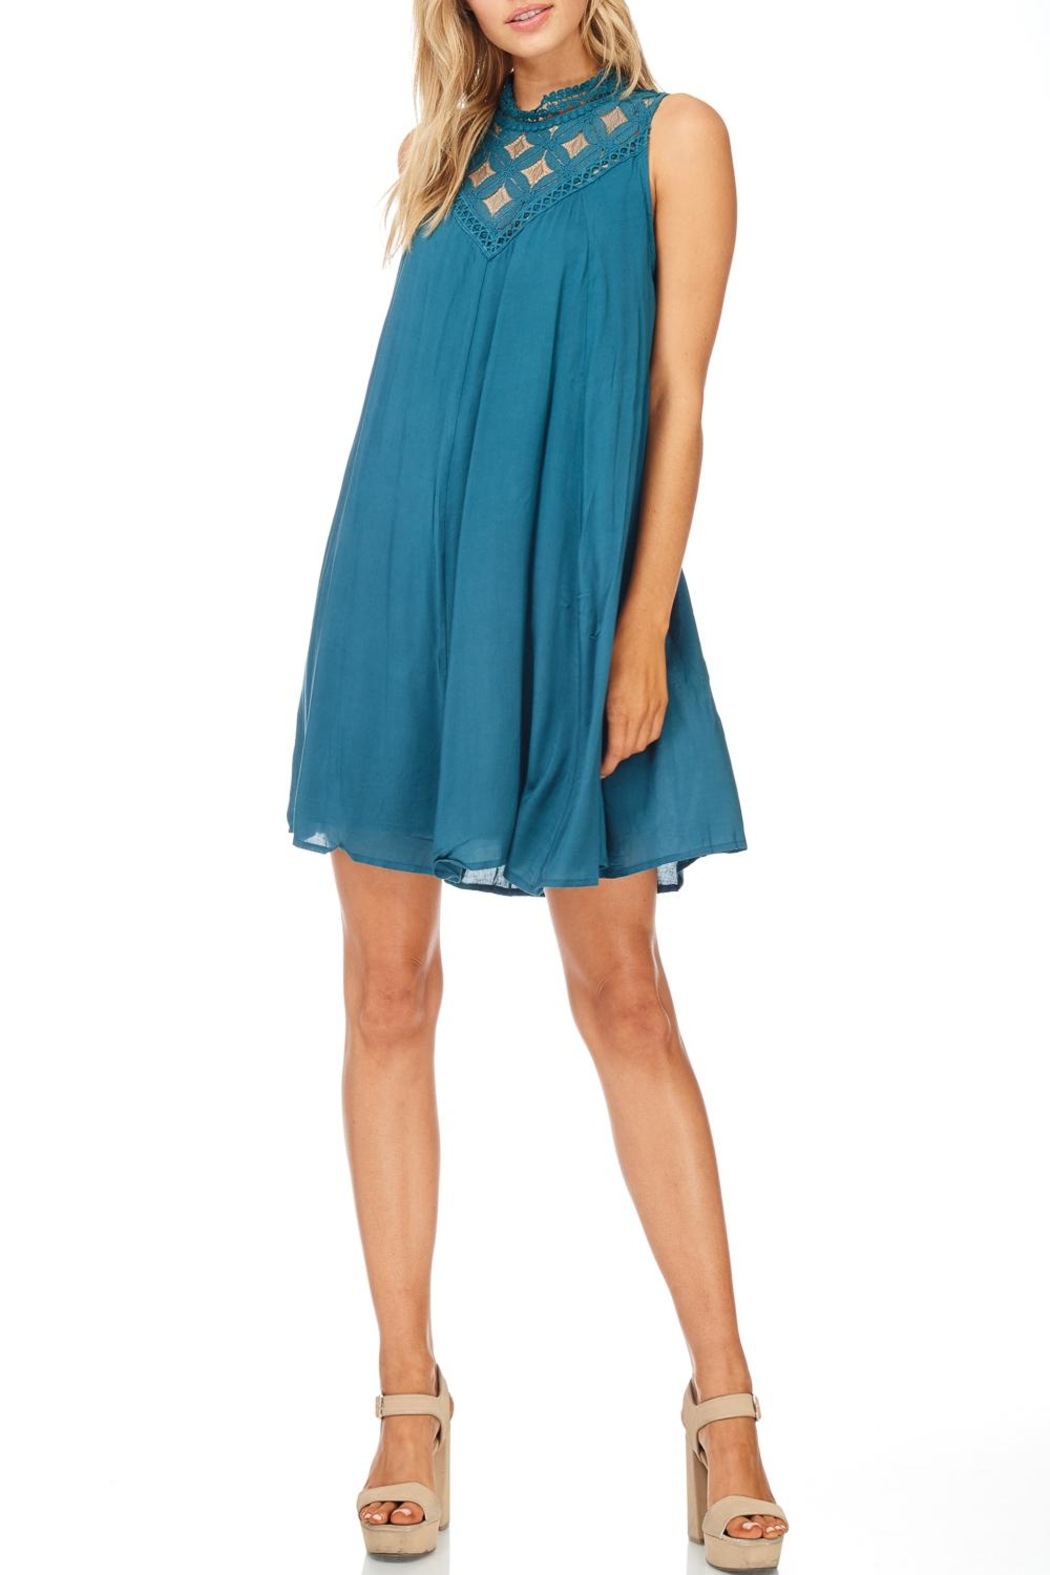 She + Sky Teal Lace Dress - Front Cropped Image